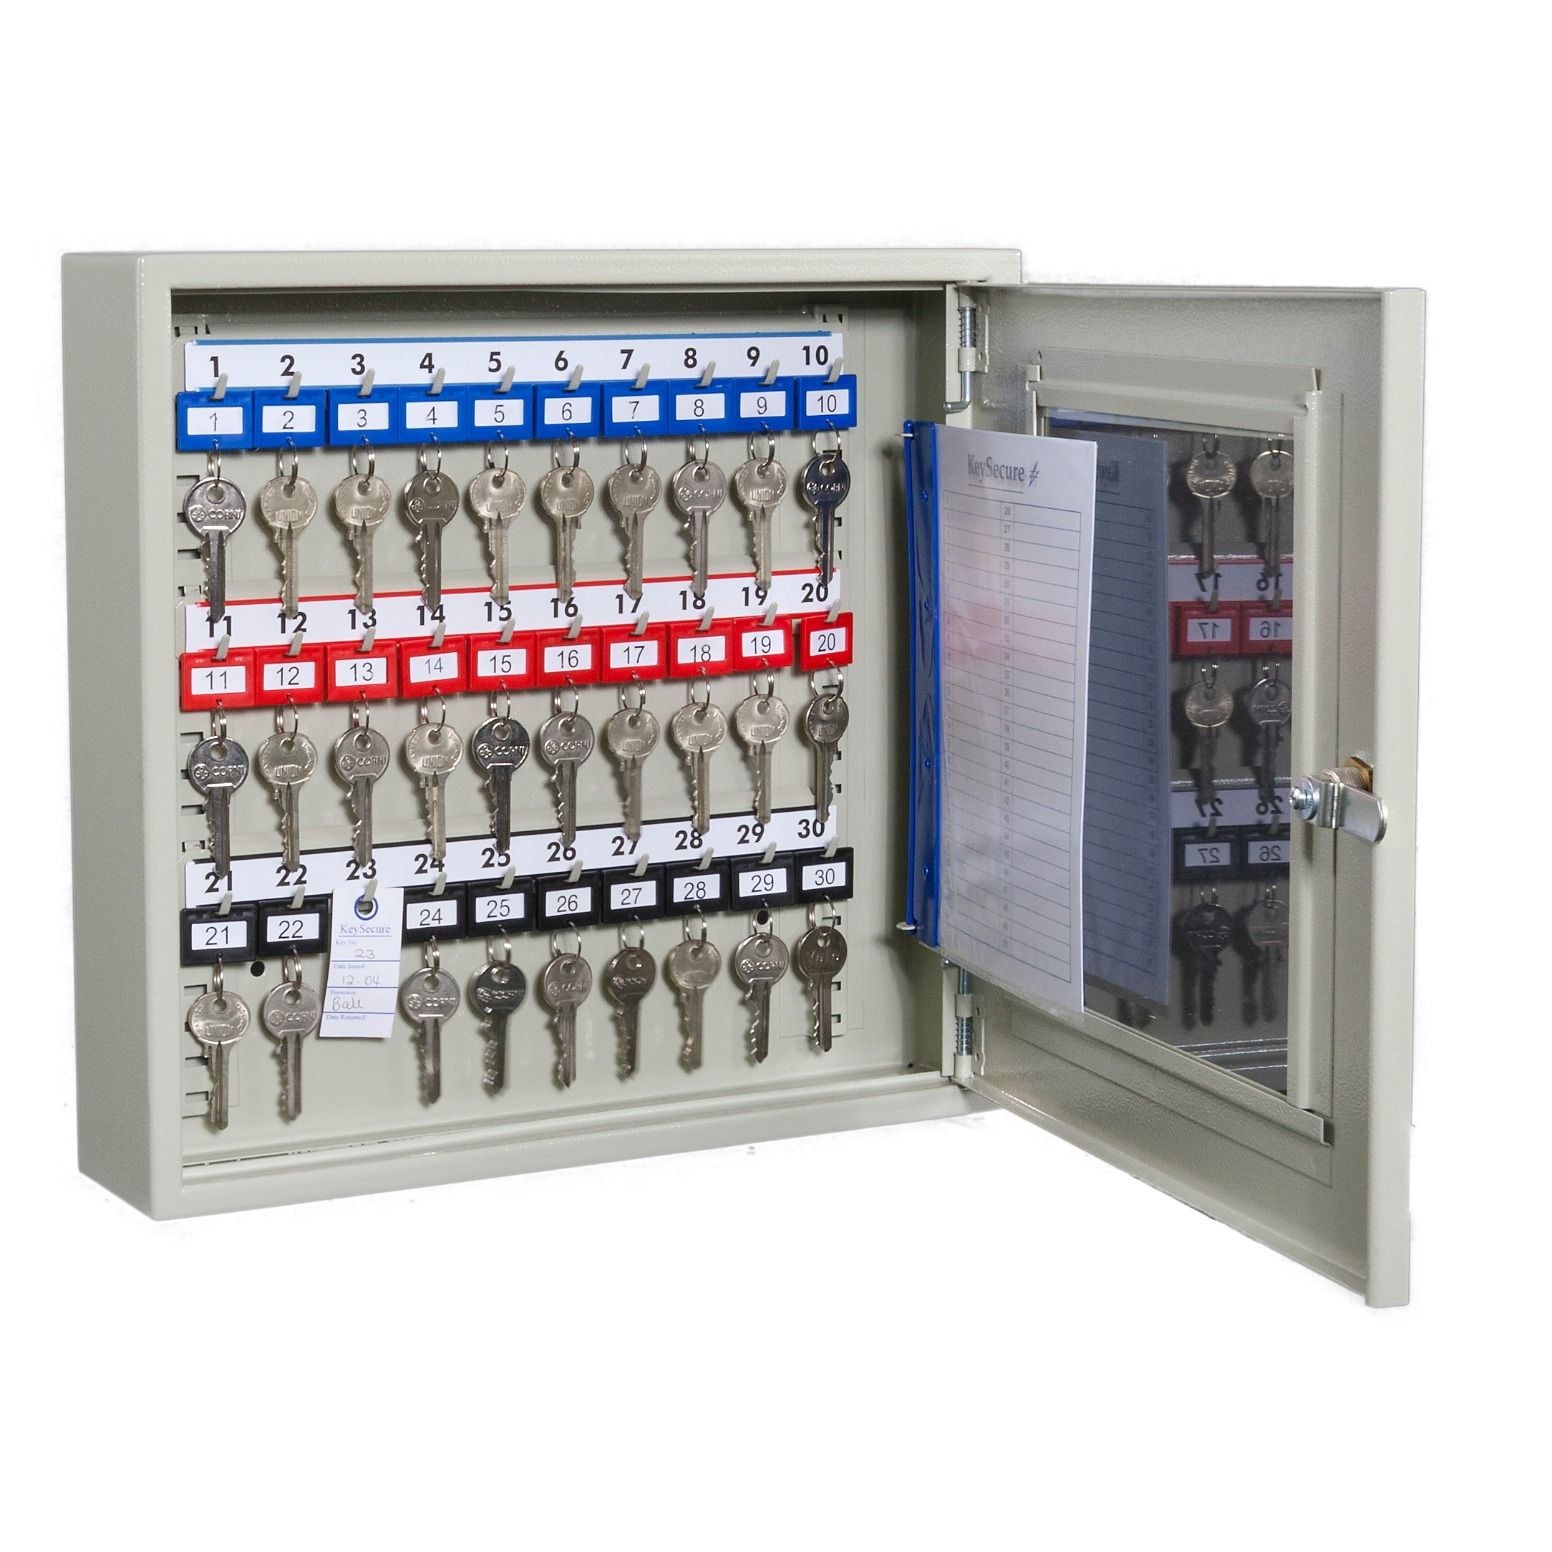 637393094479091090_clear_fronted_perspex_key_cabinets_30_hook_35_x_38_x_8cm_open.jpg